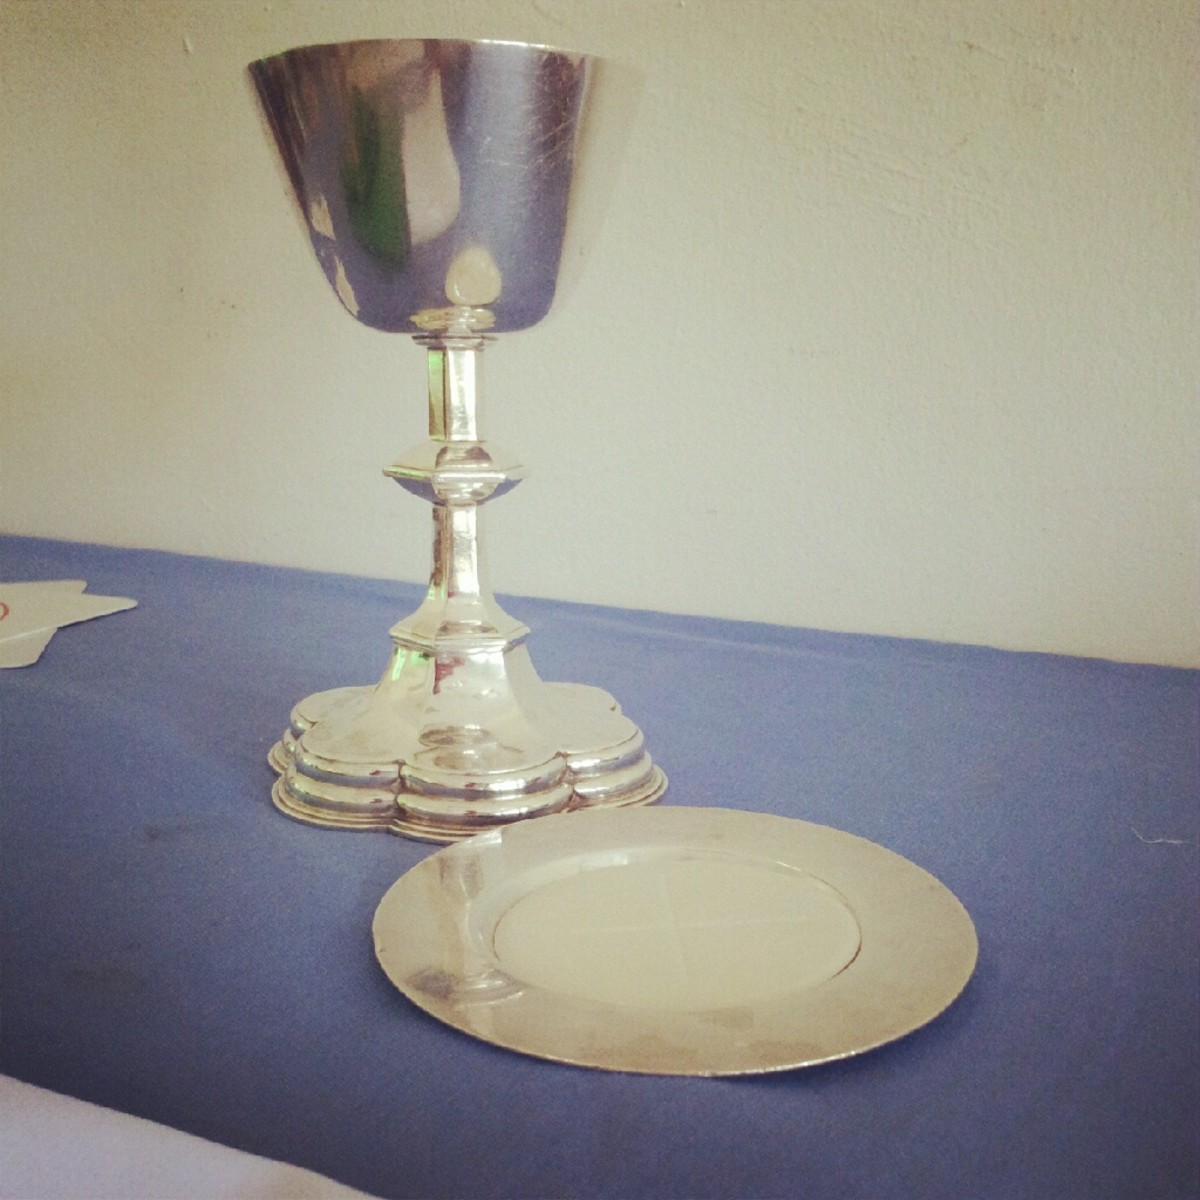 Chalice (the Cup), Paten (the plate) and Host (On the Paten)